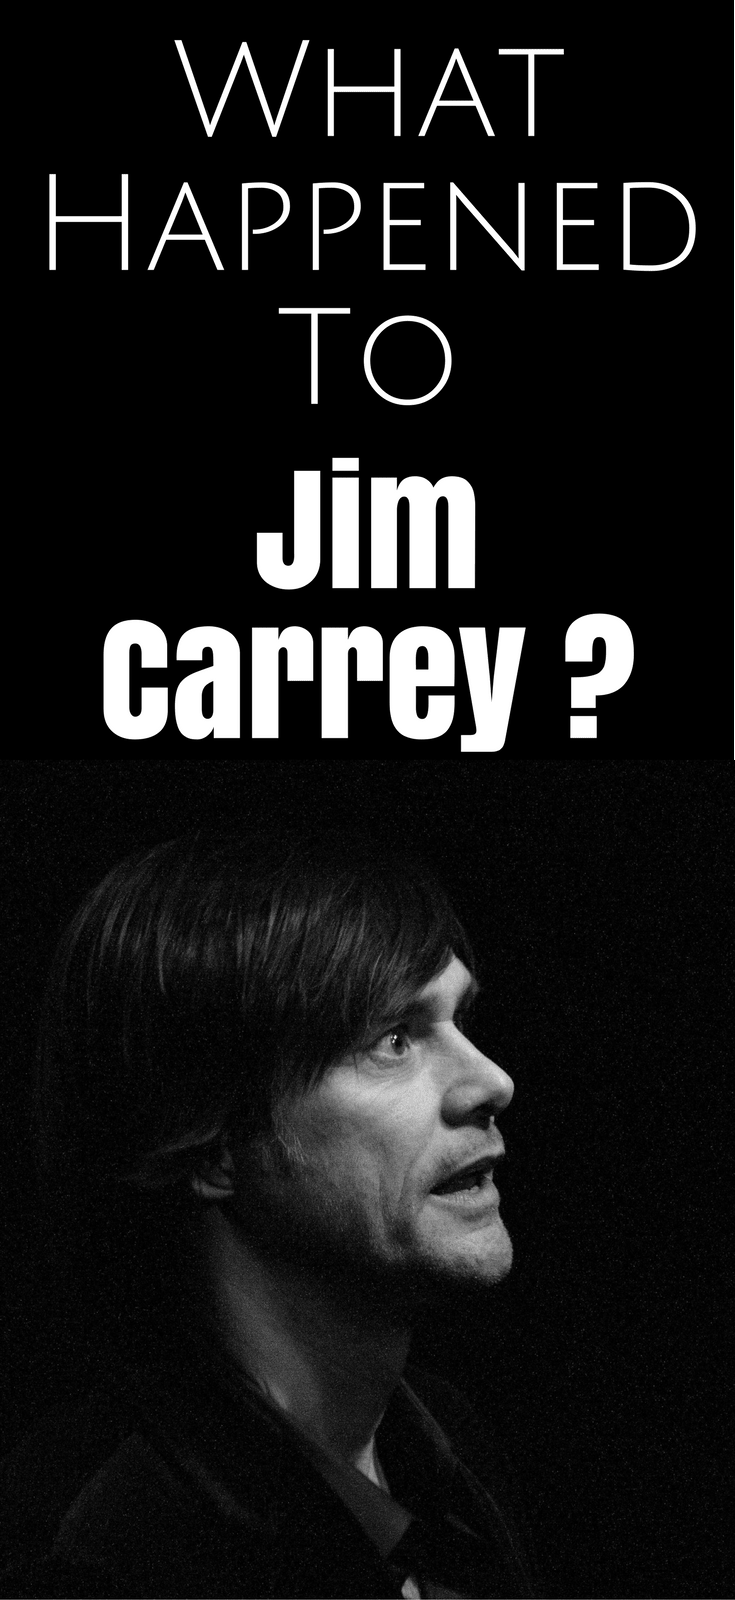 What Happened To Jim Carrey?